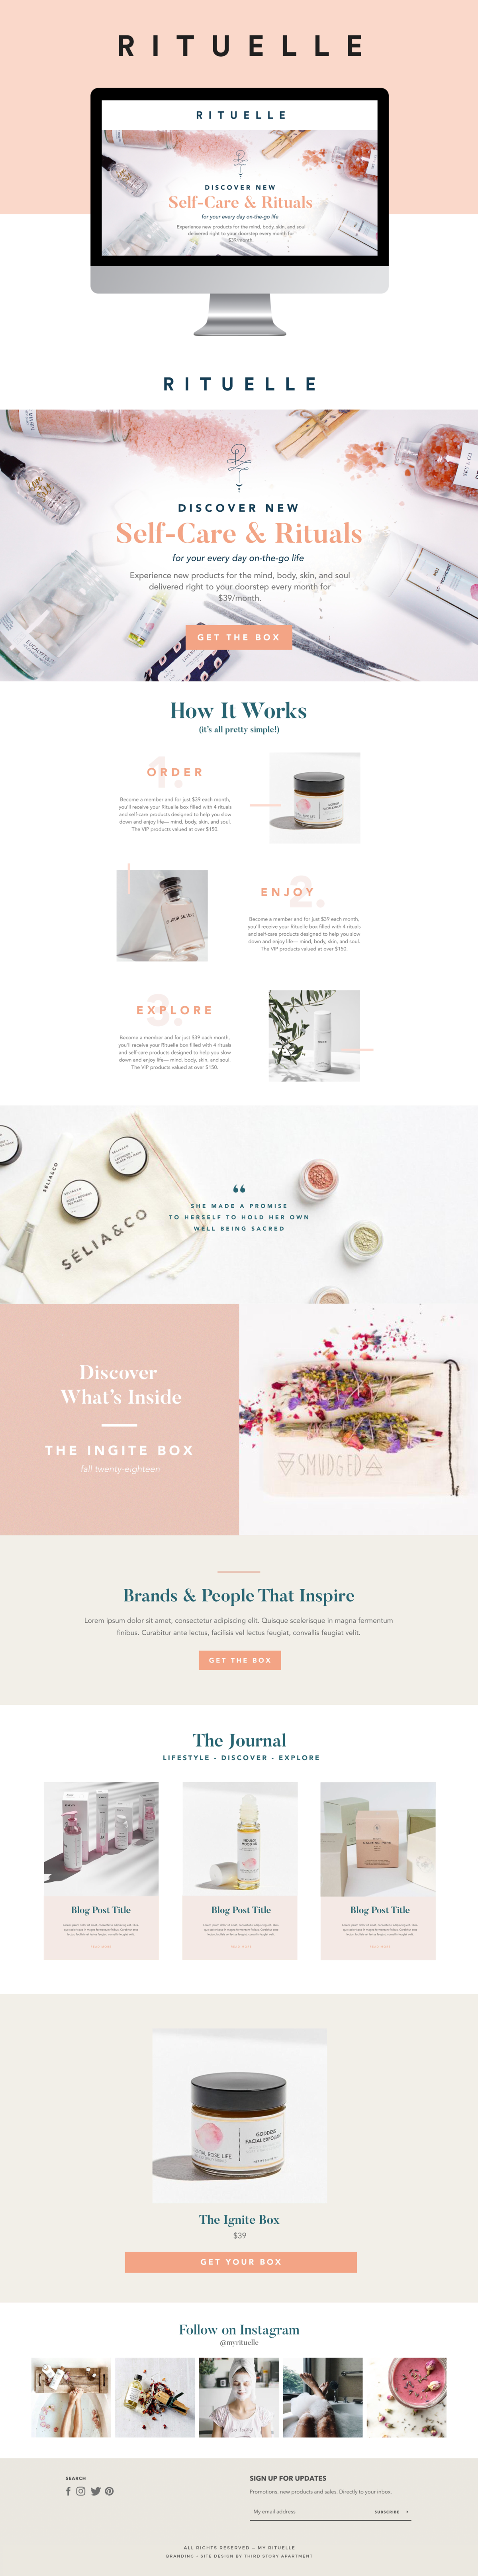 ThirdStory-Template-Desktop-And-Layout-Rituelle